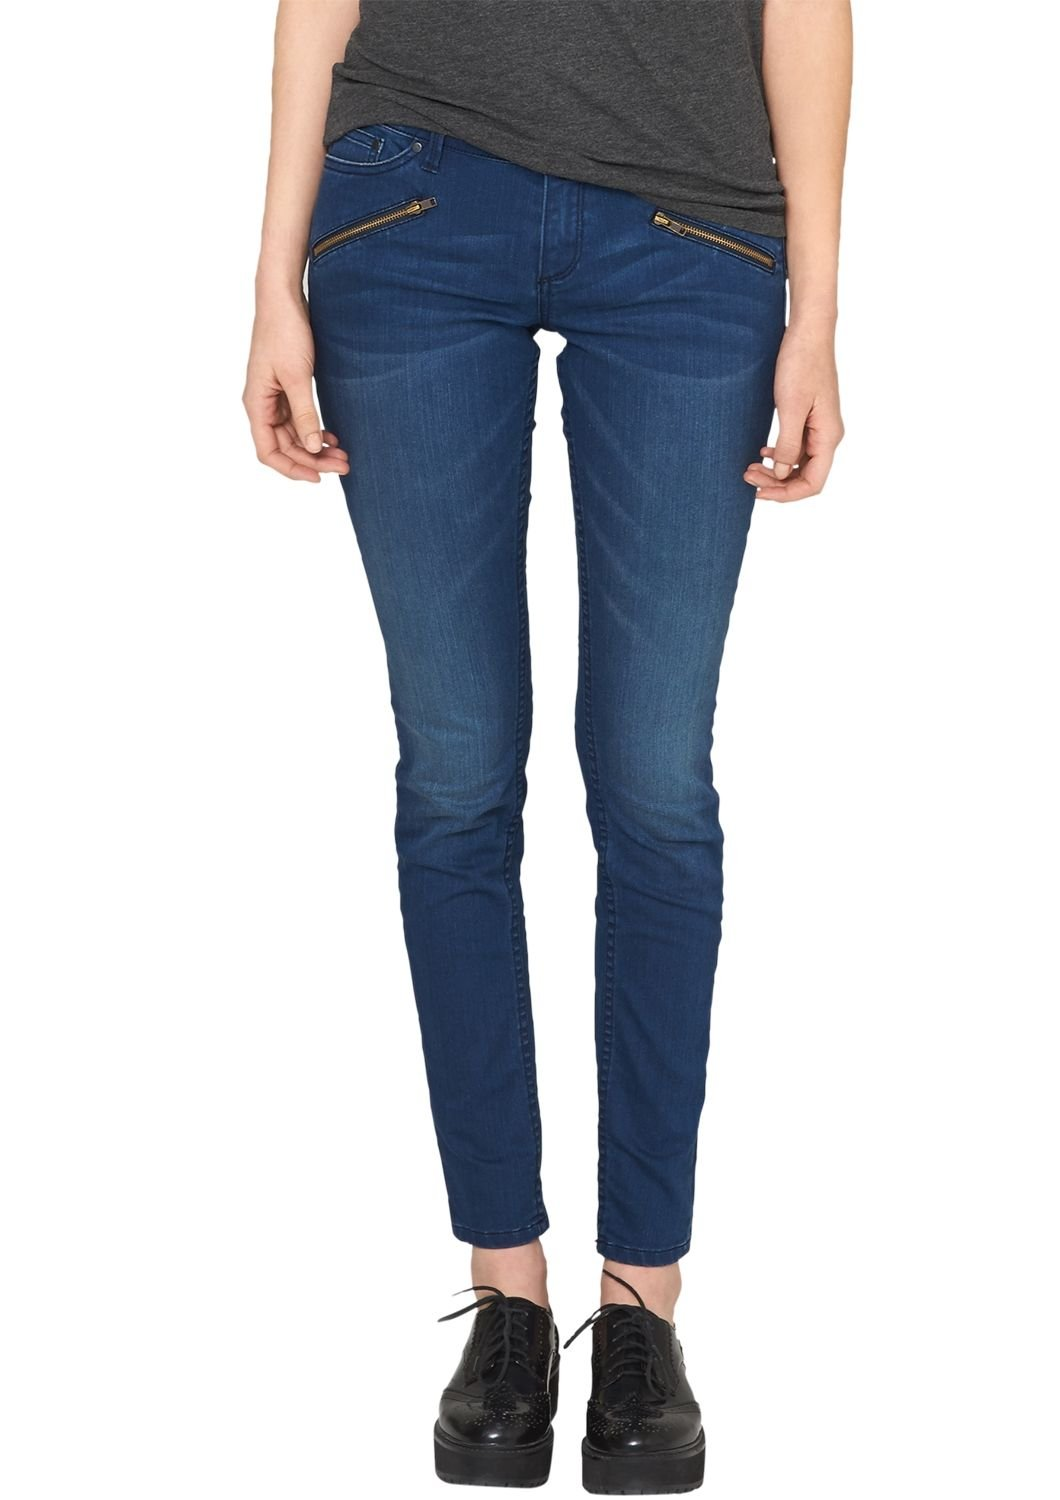 Womens 45.899.71.0315 Jeans s.Oliver Denim Q1Ad6